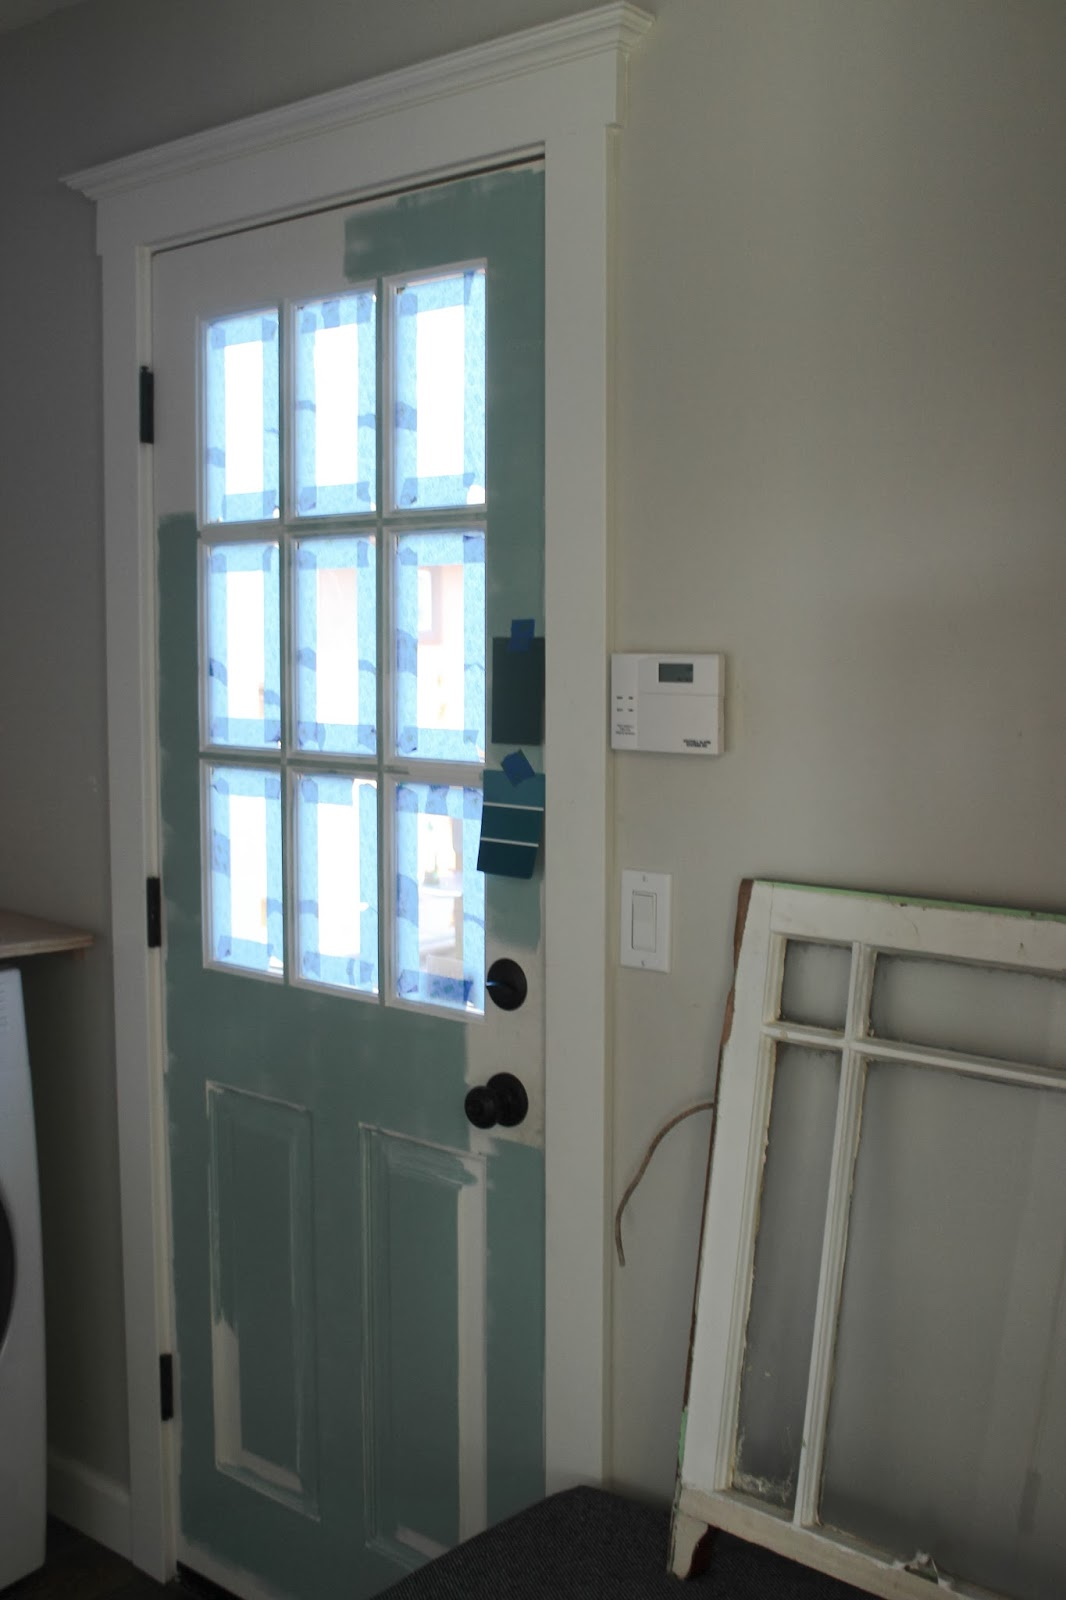 Homestyle: Picking the right hue for an interior door